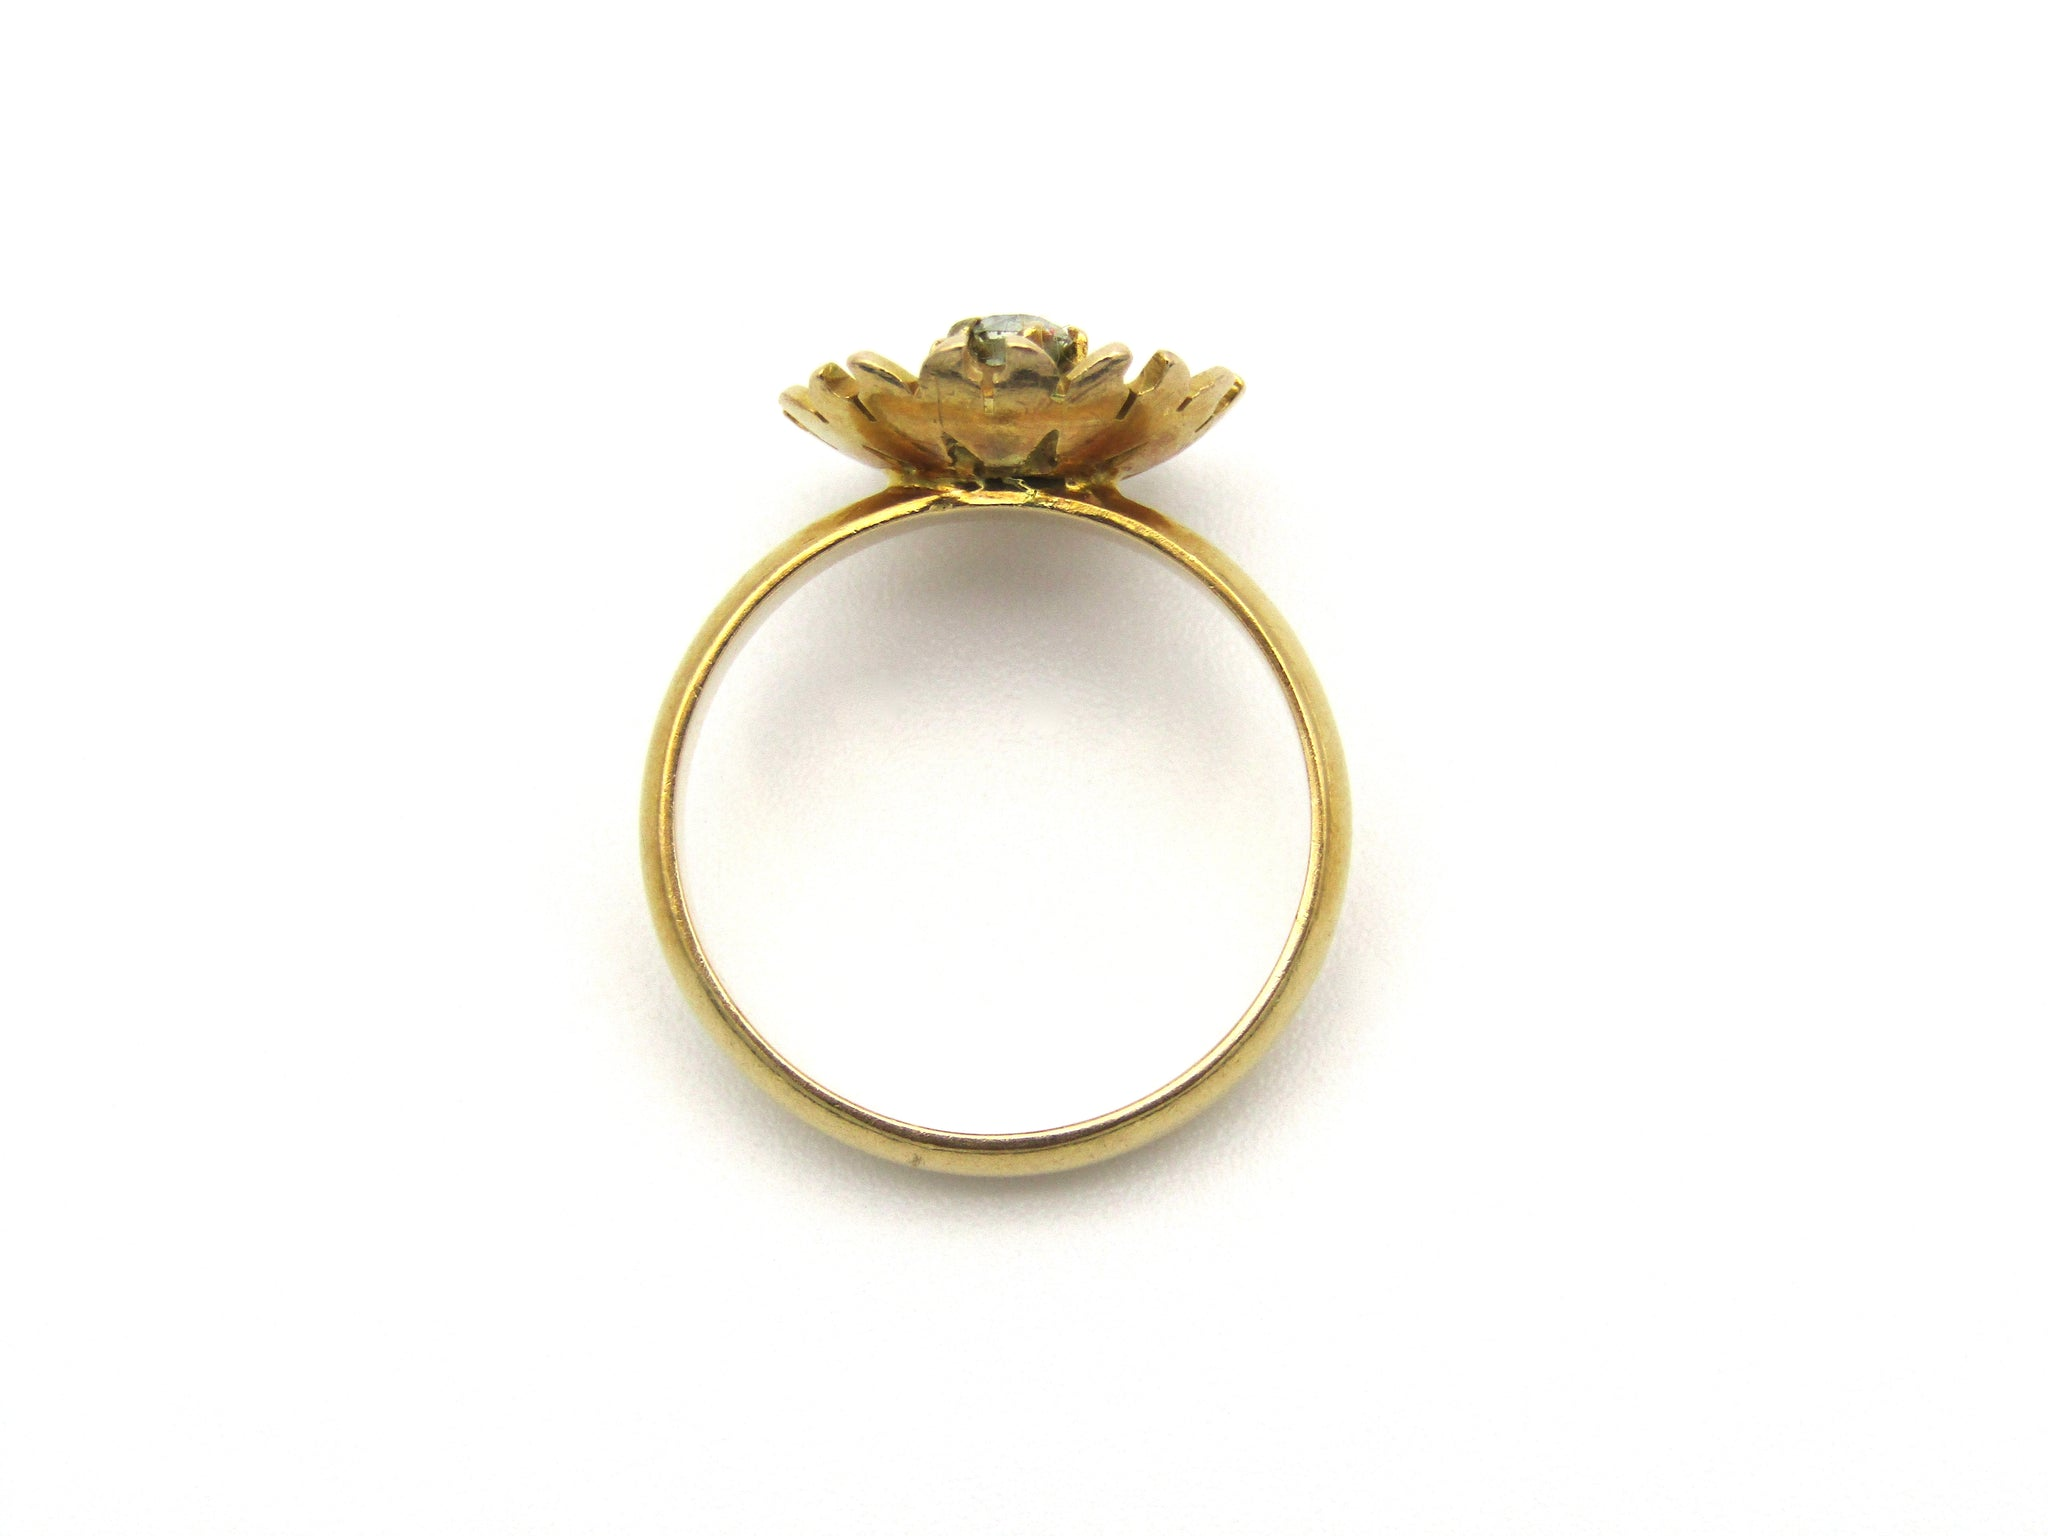 18kt gold diamond ring.